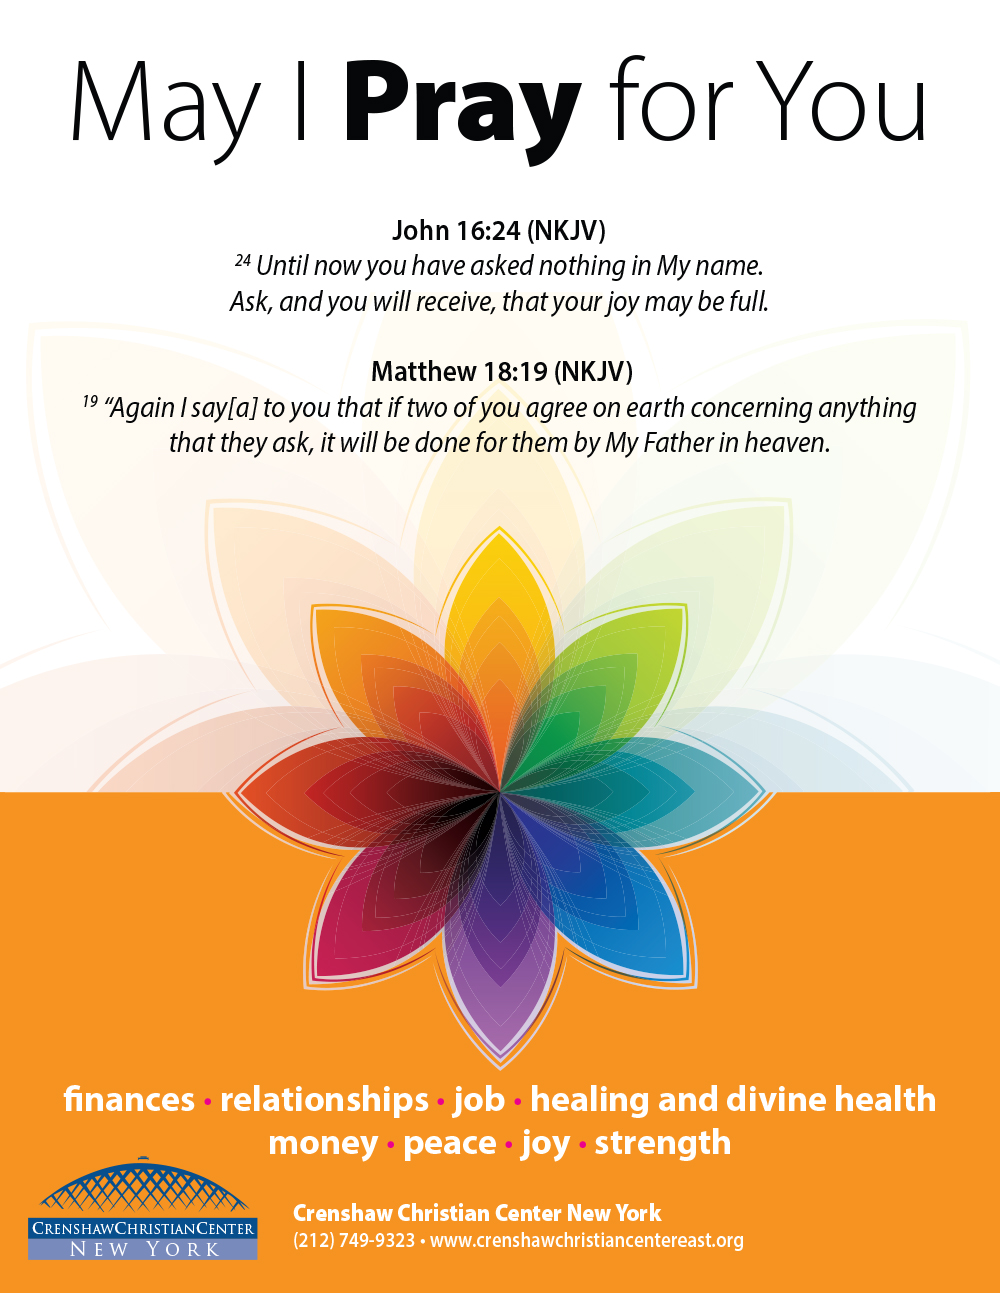 May-I-Pray-for-You_Flyer_073119.jpg